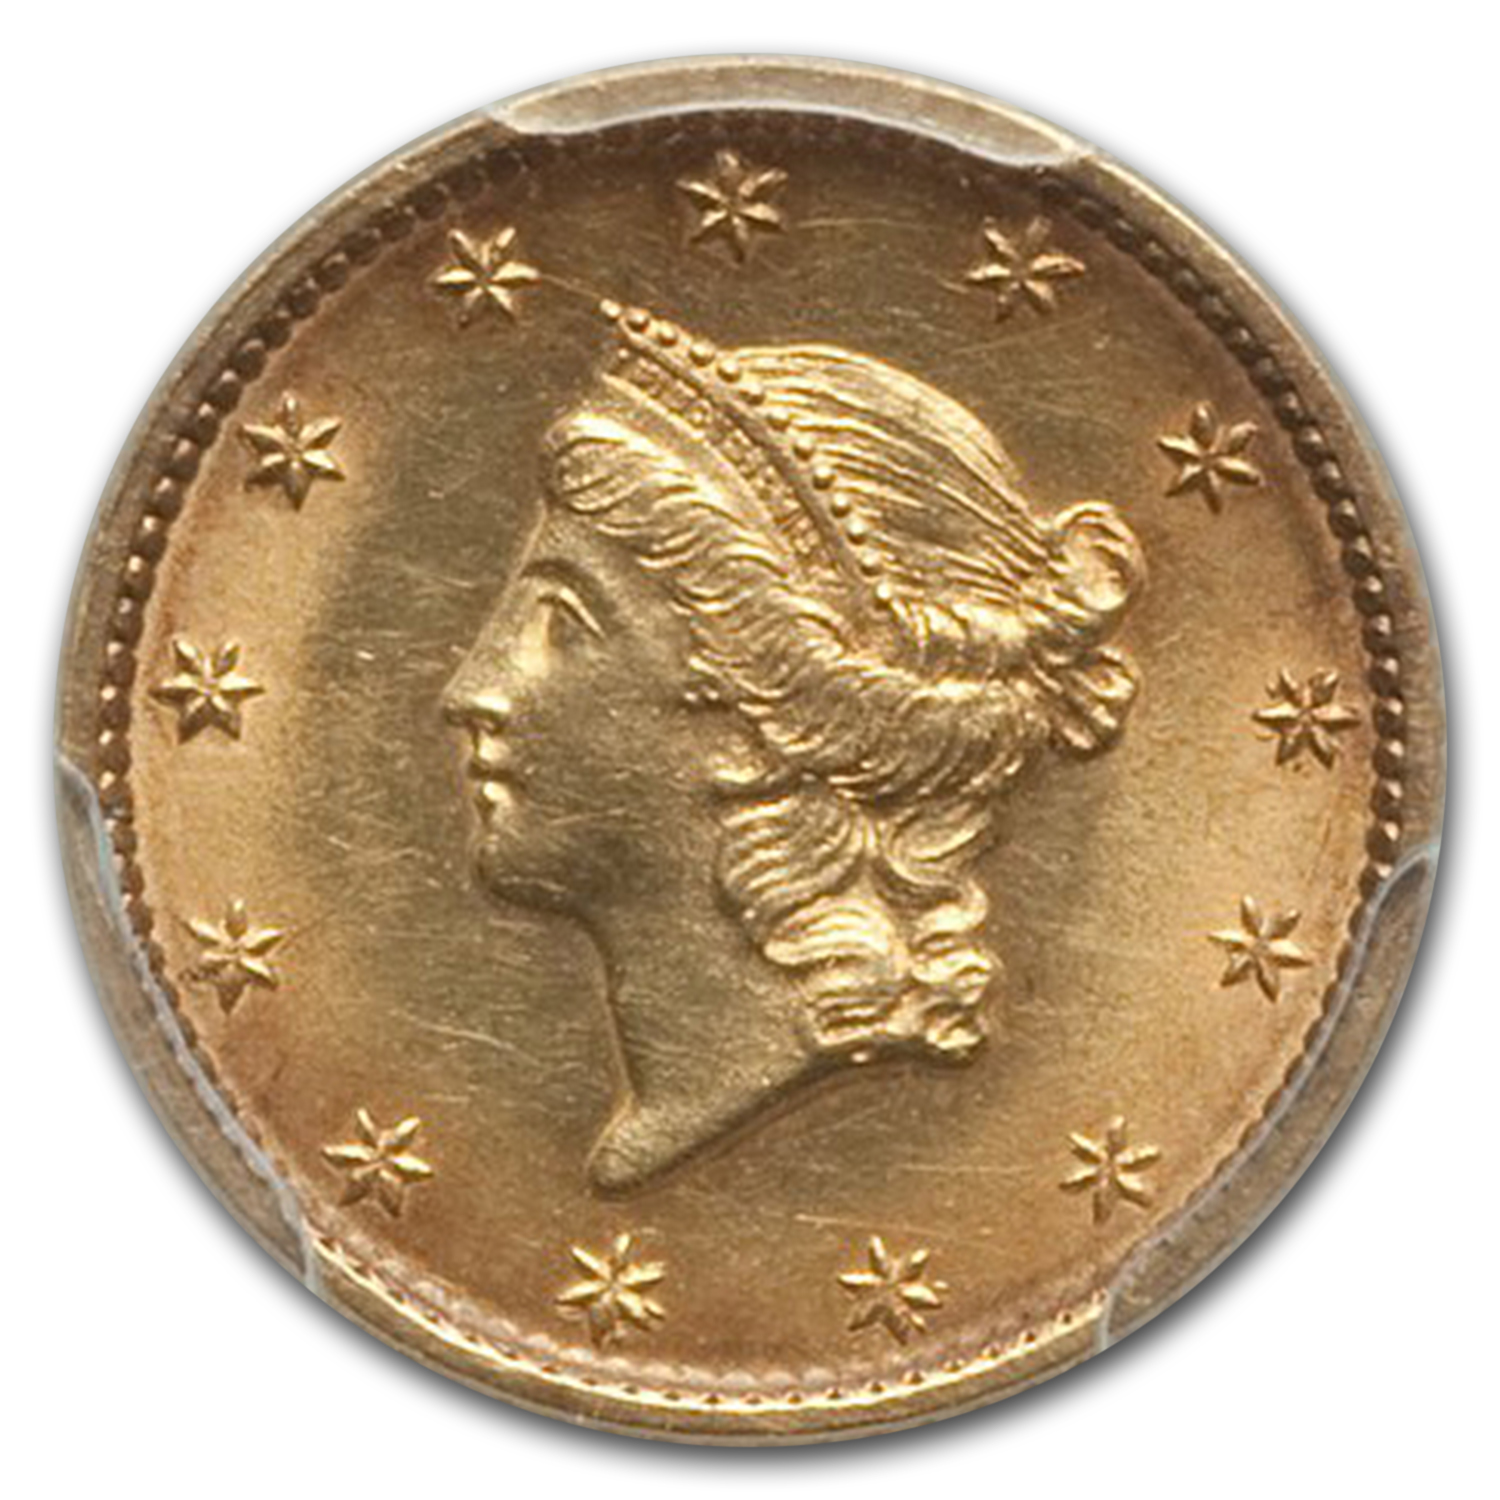 1849 $1 Liberty Gold - Small Head - Open Wreath No L - MS-62 PCGS